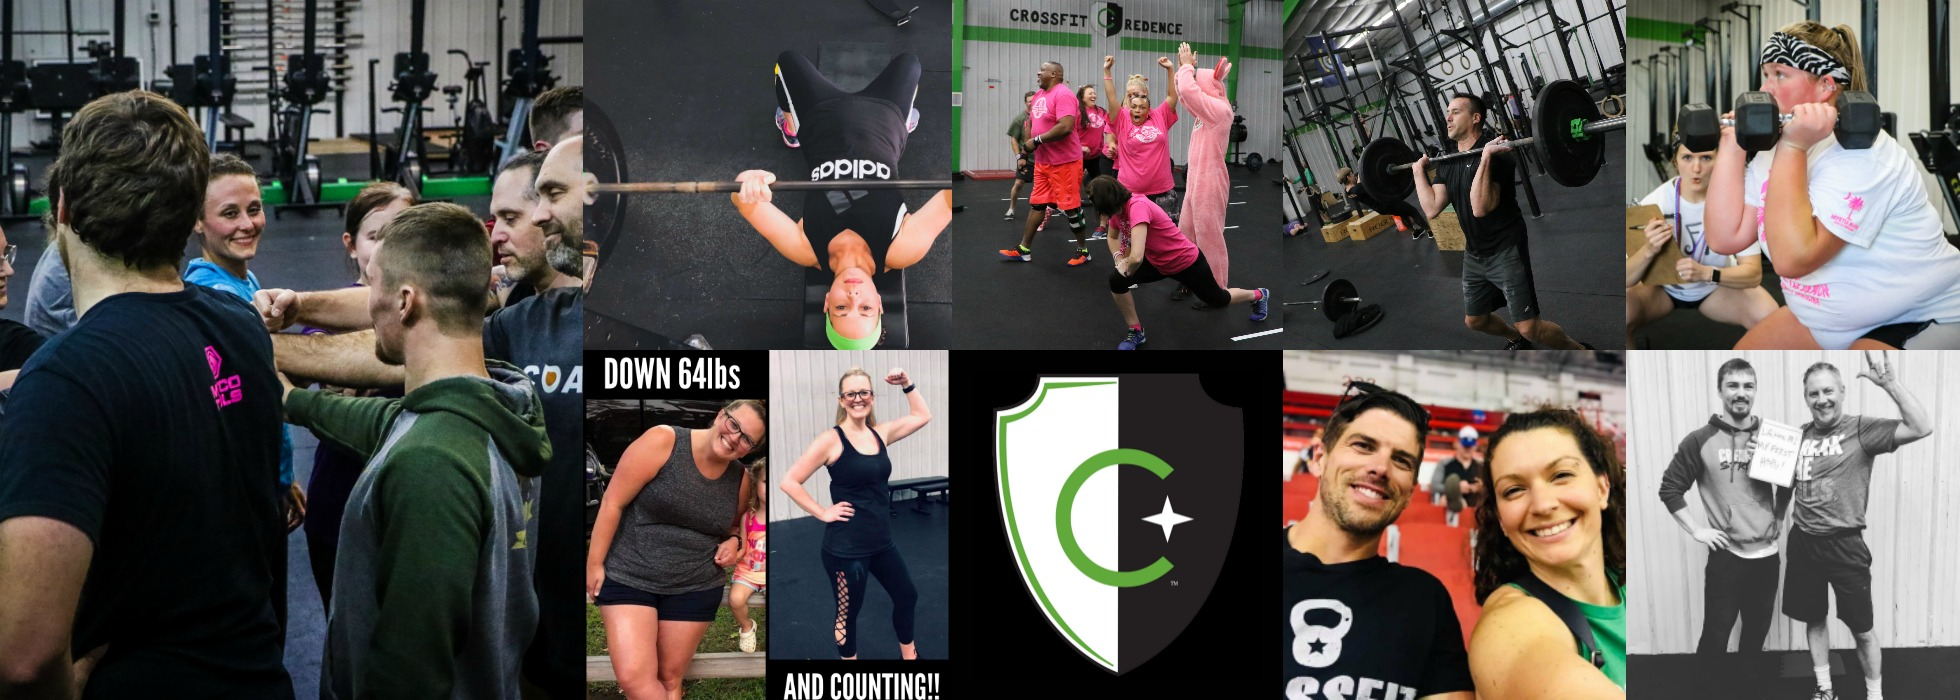 Top 5 Best Gyms To Join near Rochester MN, Top 5 Best Gyms To Join near Austin MN, Top 5 Best Gyms To Join near Owatonna MN, Top 5 Best Gyms To Join near Red Wing MN, Top 5 Best Gyms To Join near Winona MN, Top 5 Best Gyms To Join near Faribault MN, Top 5 Best Gyms To Join near Northfield MN, Top 5 Best Gyms To Join near Albert Lea MN, Top 5 Best Gyms To Join near Hastings MN